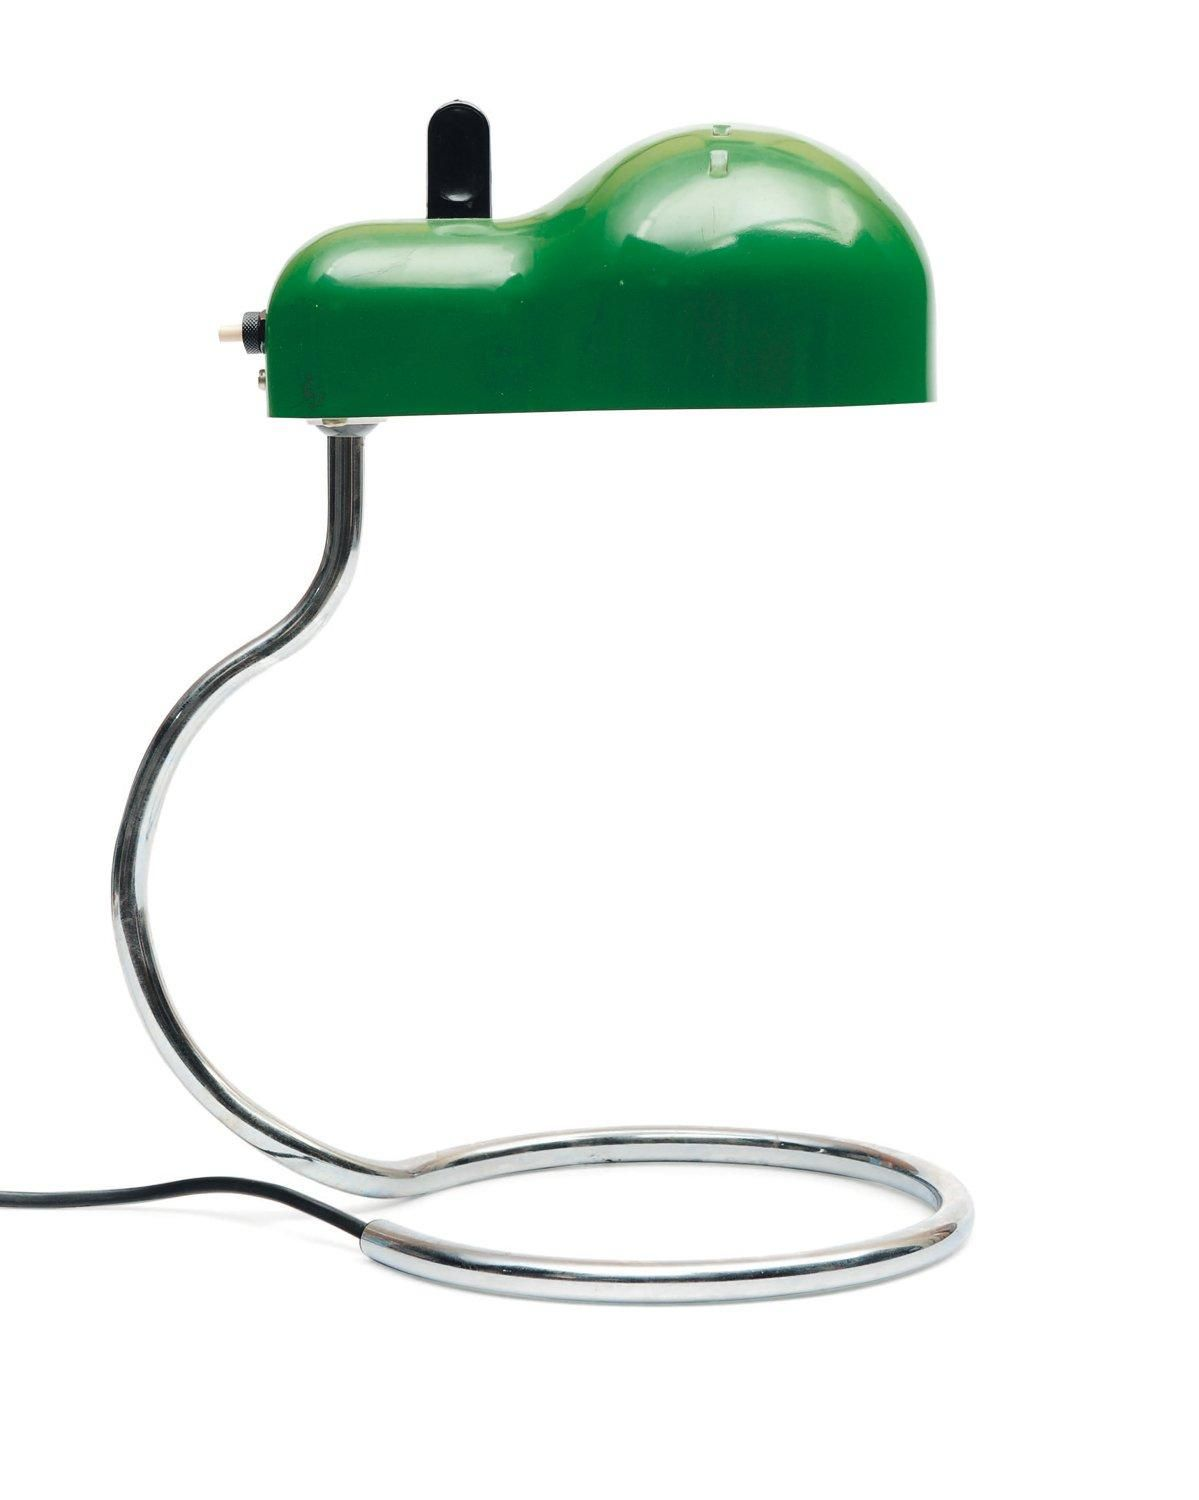 1000 ideas about joe colombo on pinterest luminaire design product - Joe Colombo Lampe Poser Mod Le Topo Edition Stilnovo Ca 1970